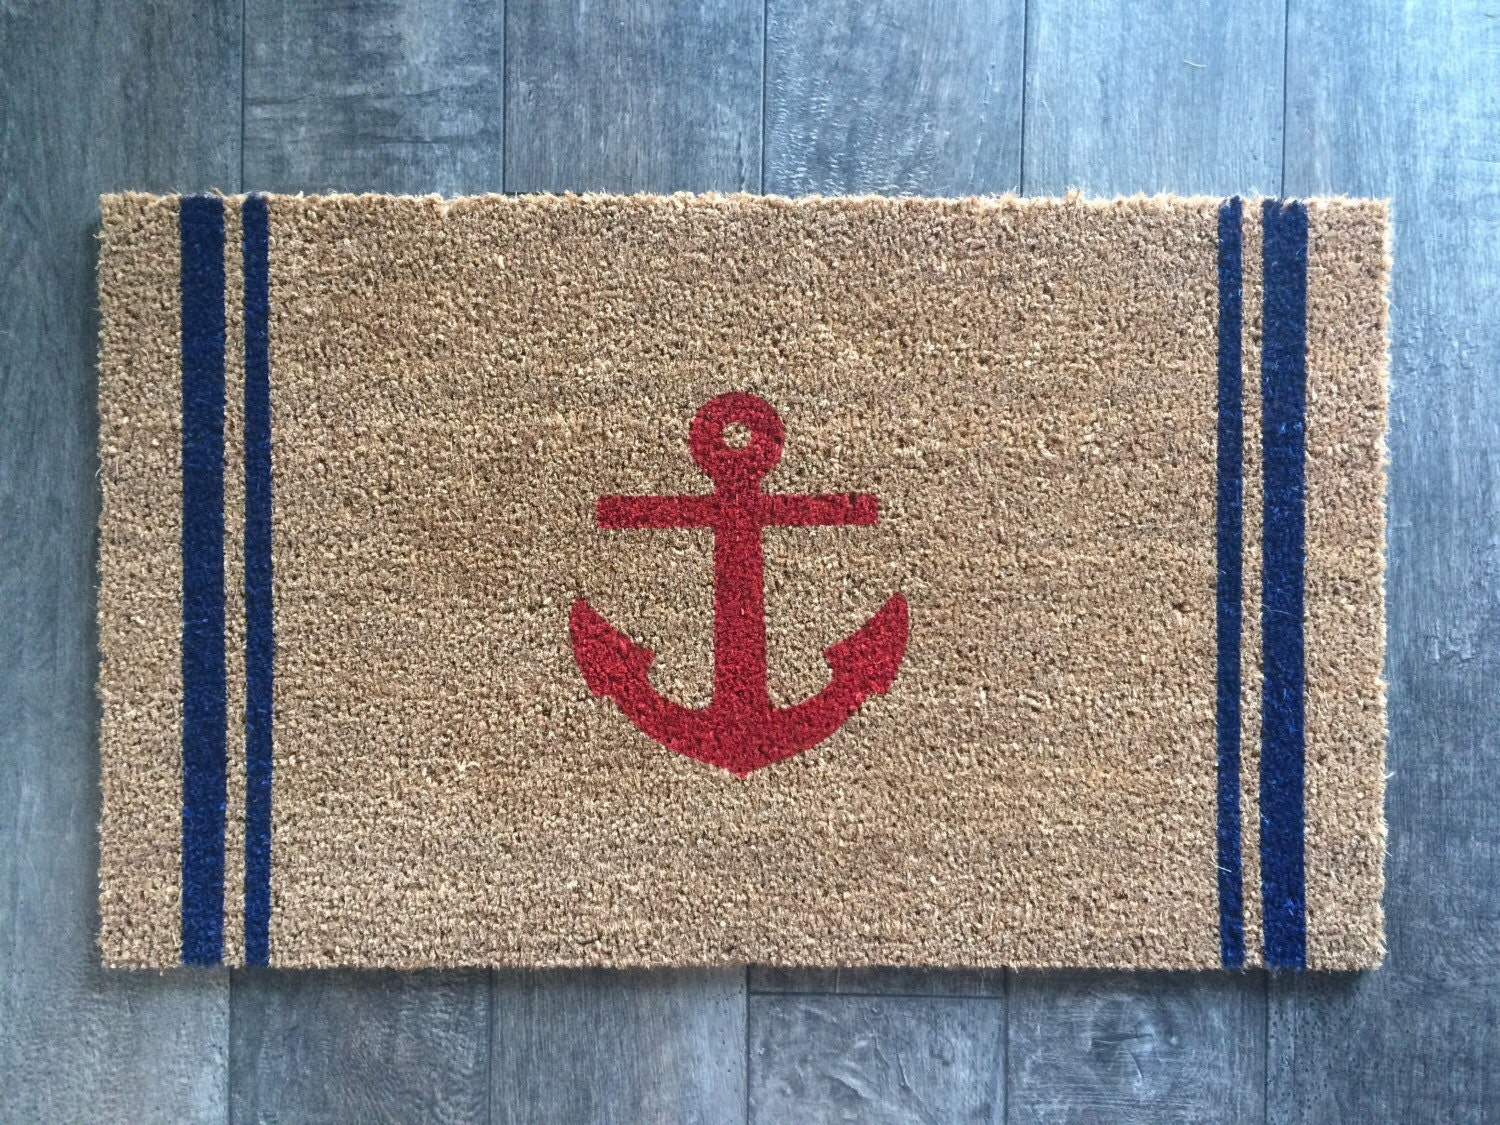 rugs slip mats bath runner turquoise amazon floor com bathroom flannel nautical dp rug carpet backing non anchor absorbent and fabric mat rubber kitchen